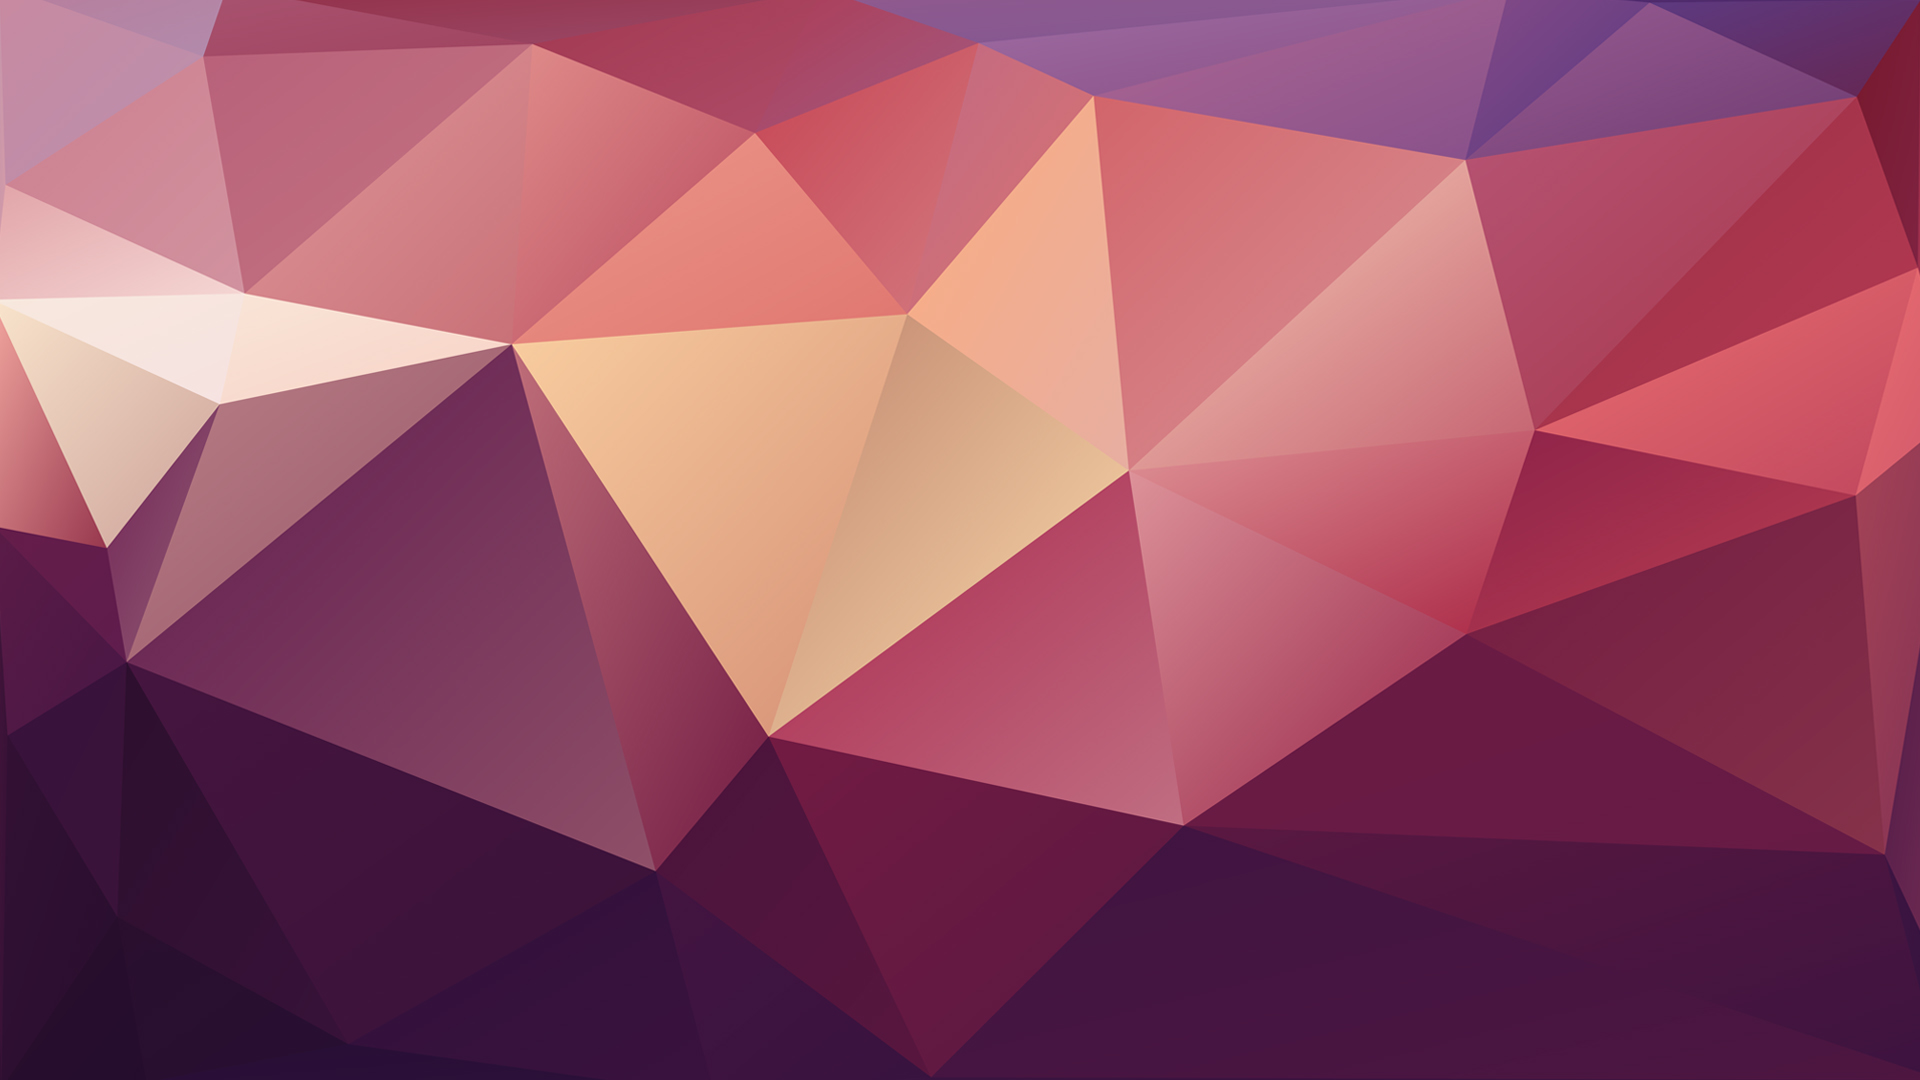 Abstract Geometric Low Poly   Wallpaper by McFrolic 1920x1080